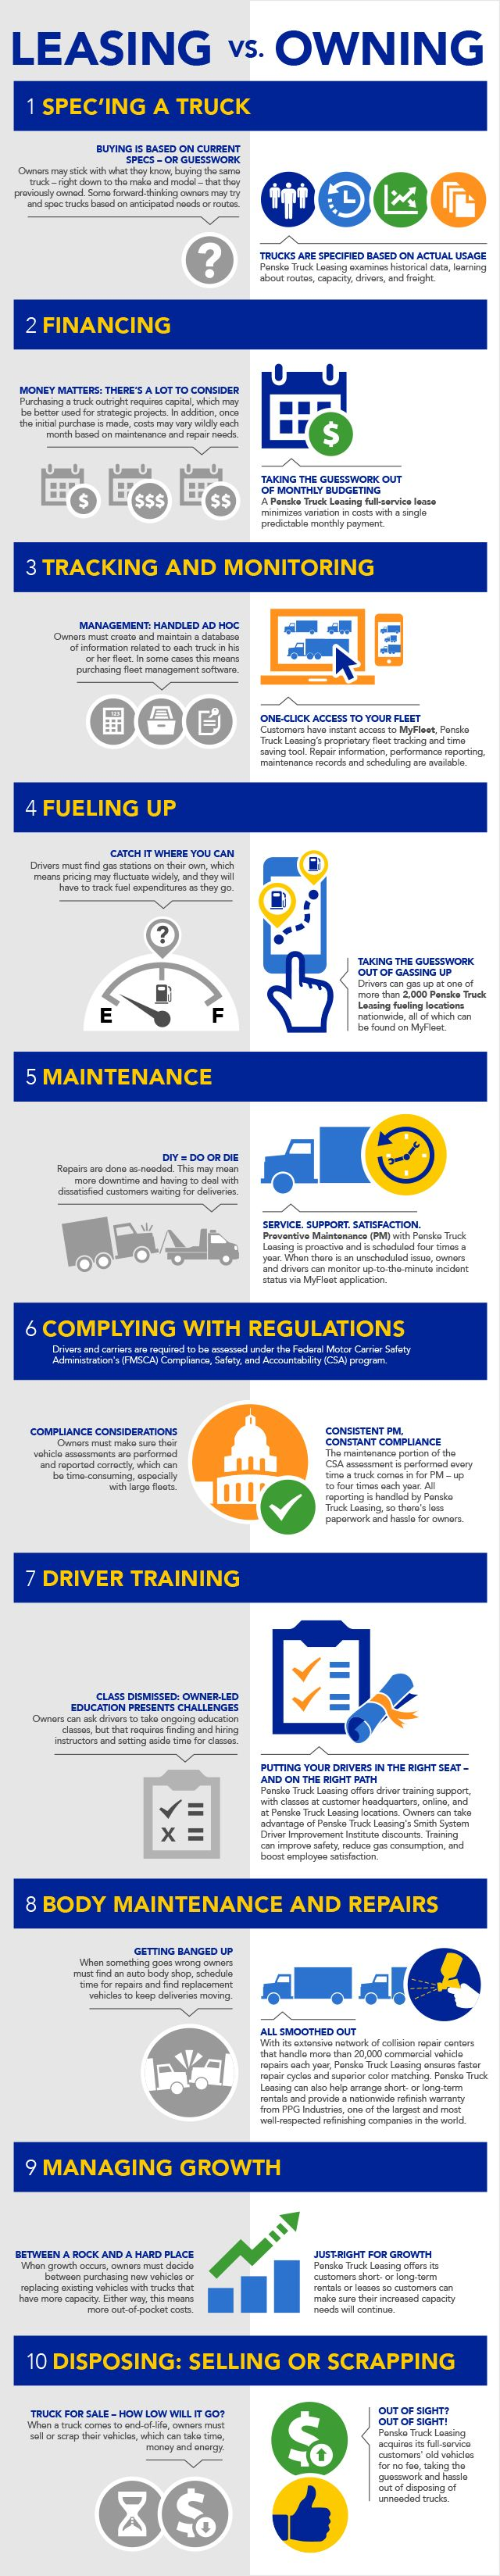 Infographic: Is leasing or ownership right for you? #leasing #trucks #trucking #truckers #fleetmanagement #truckleasing #Penske #infographic #infographics #financing #business #lease